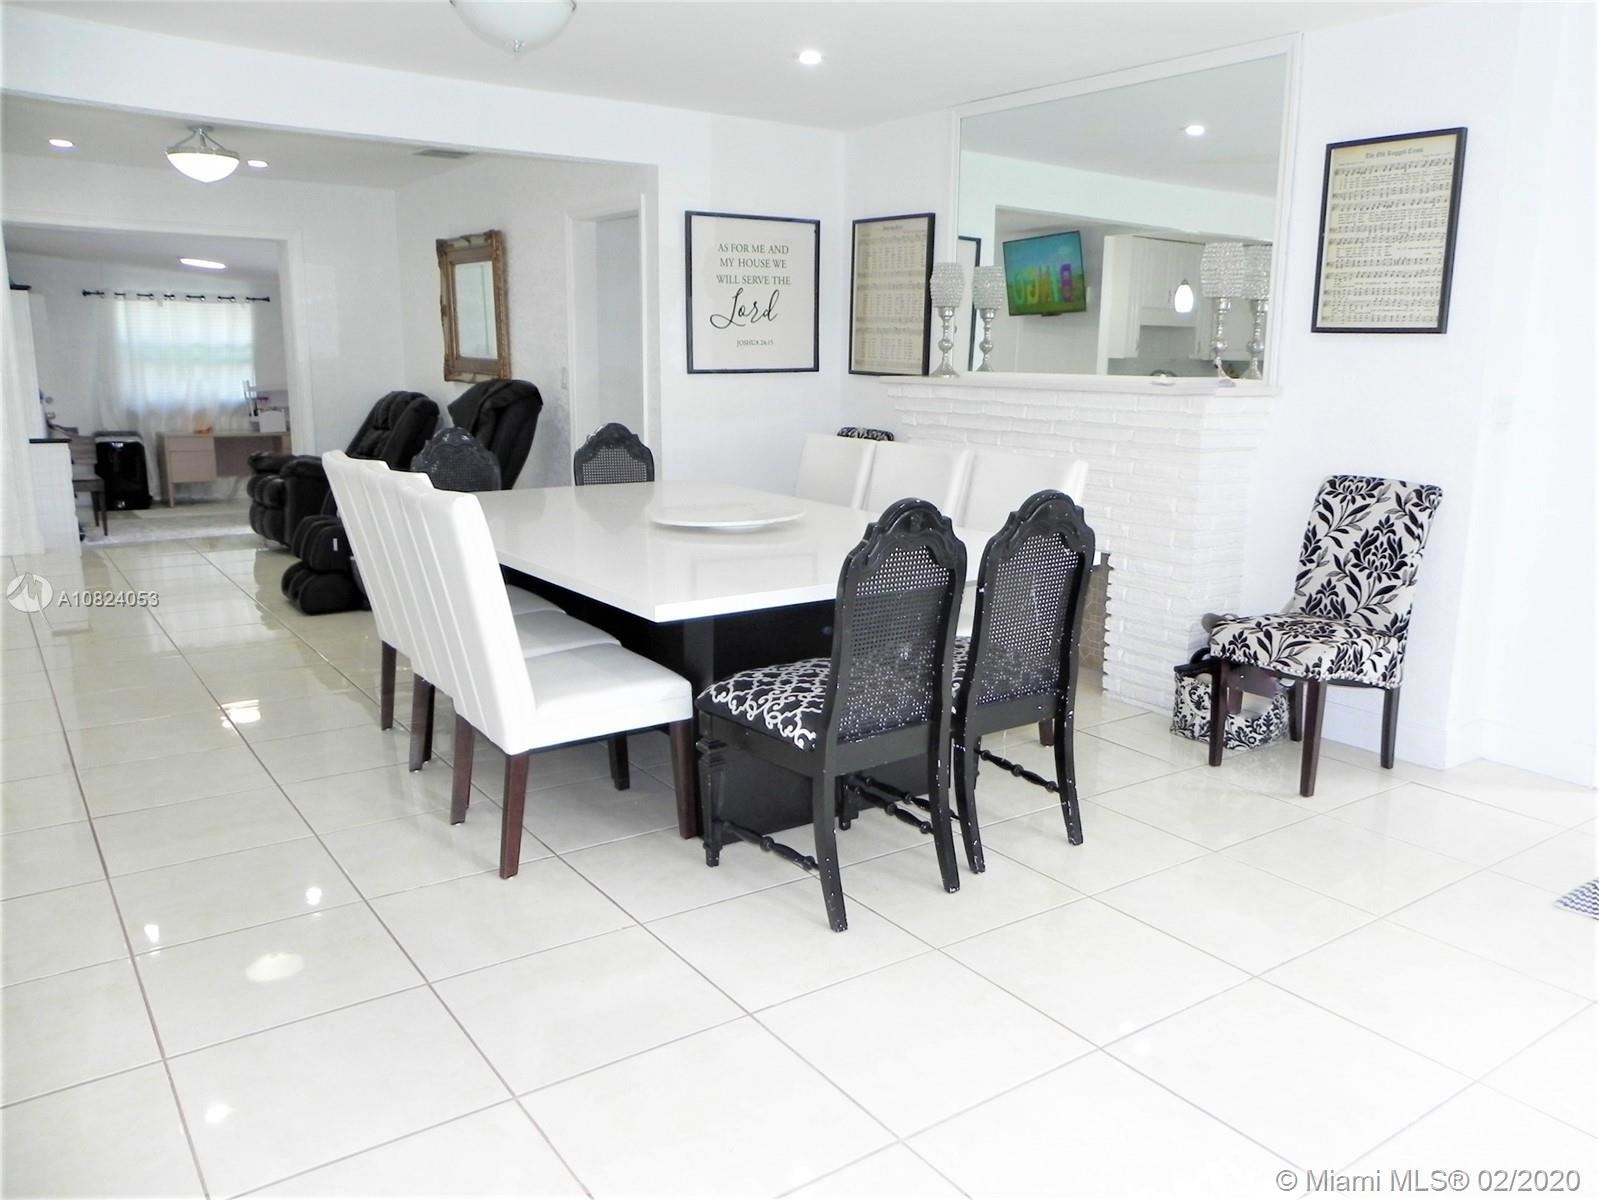 Photo 6 of Listing MLS a10824053 in 1531 Johnson St Hollywood FL 33020